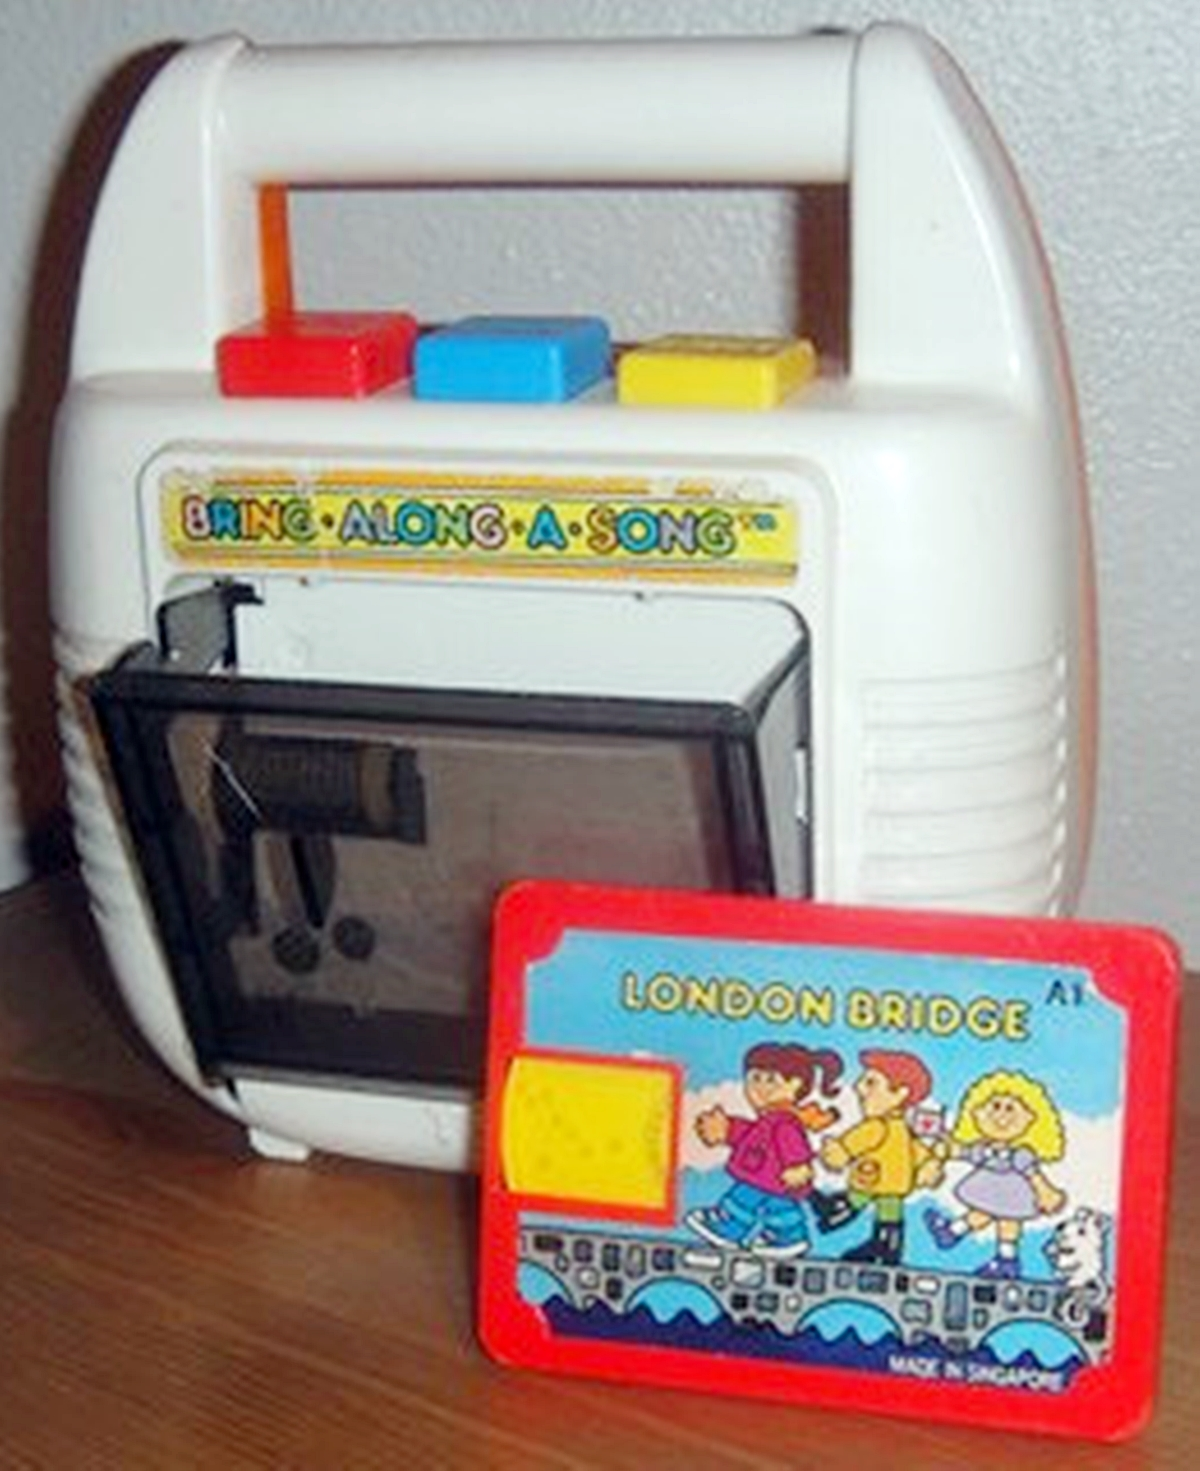 12 15 15 Musical Toys From Your Childhood We Bet You've Forgotten About